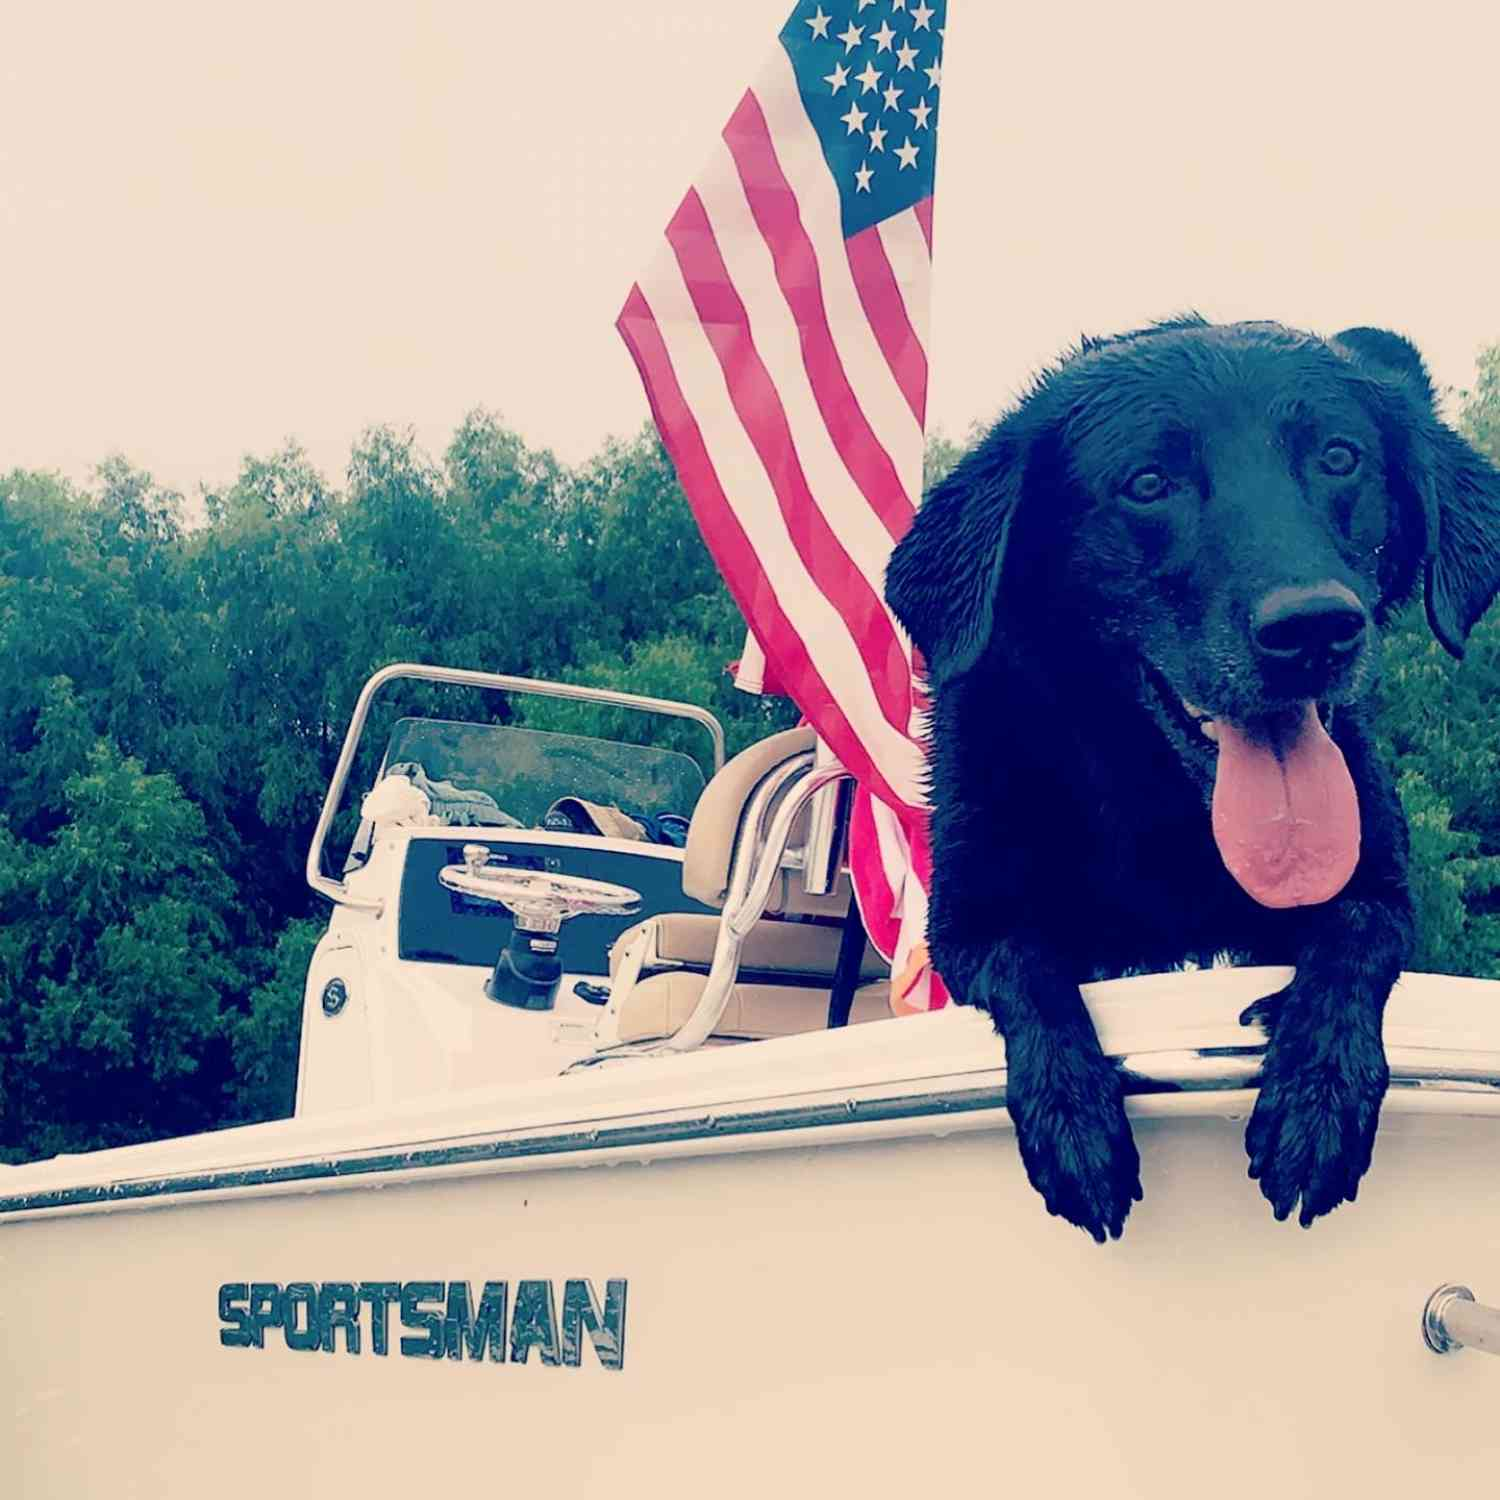 Title: Ruff day - On board their Sportsman Masters 227 Bay Boat - Location: False River, Louisiana. Participating in the Photo Contest #SportsmanAugust2020